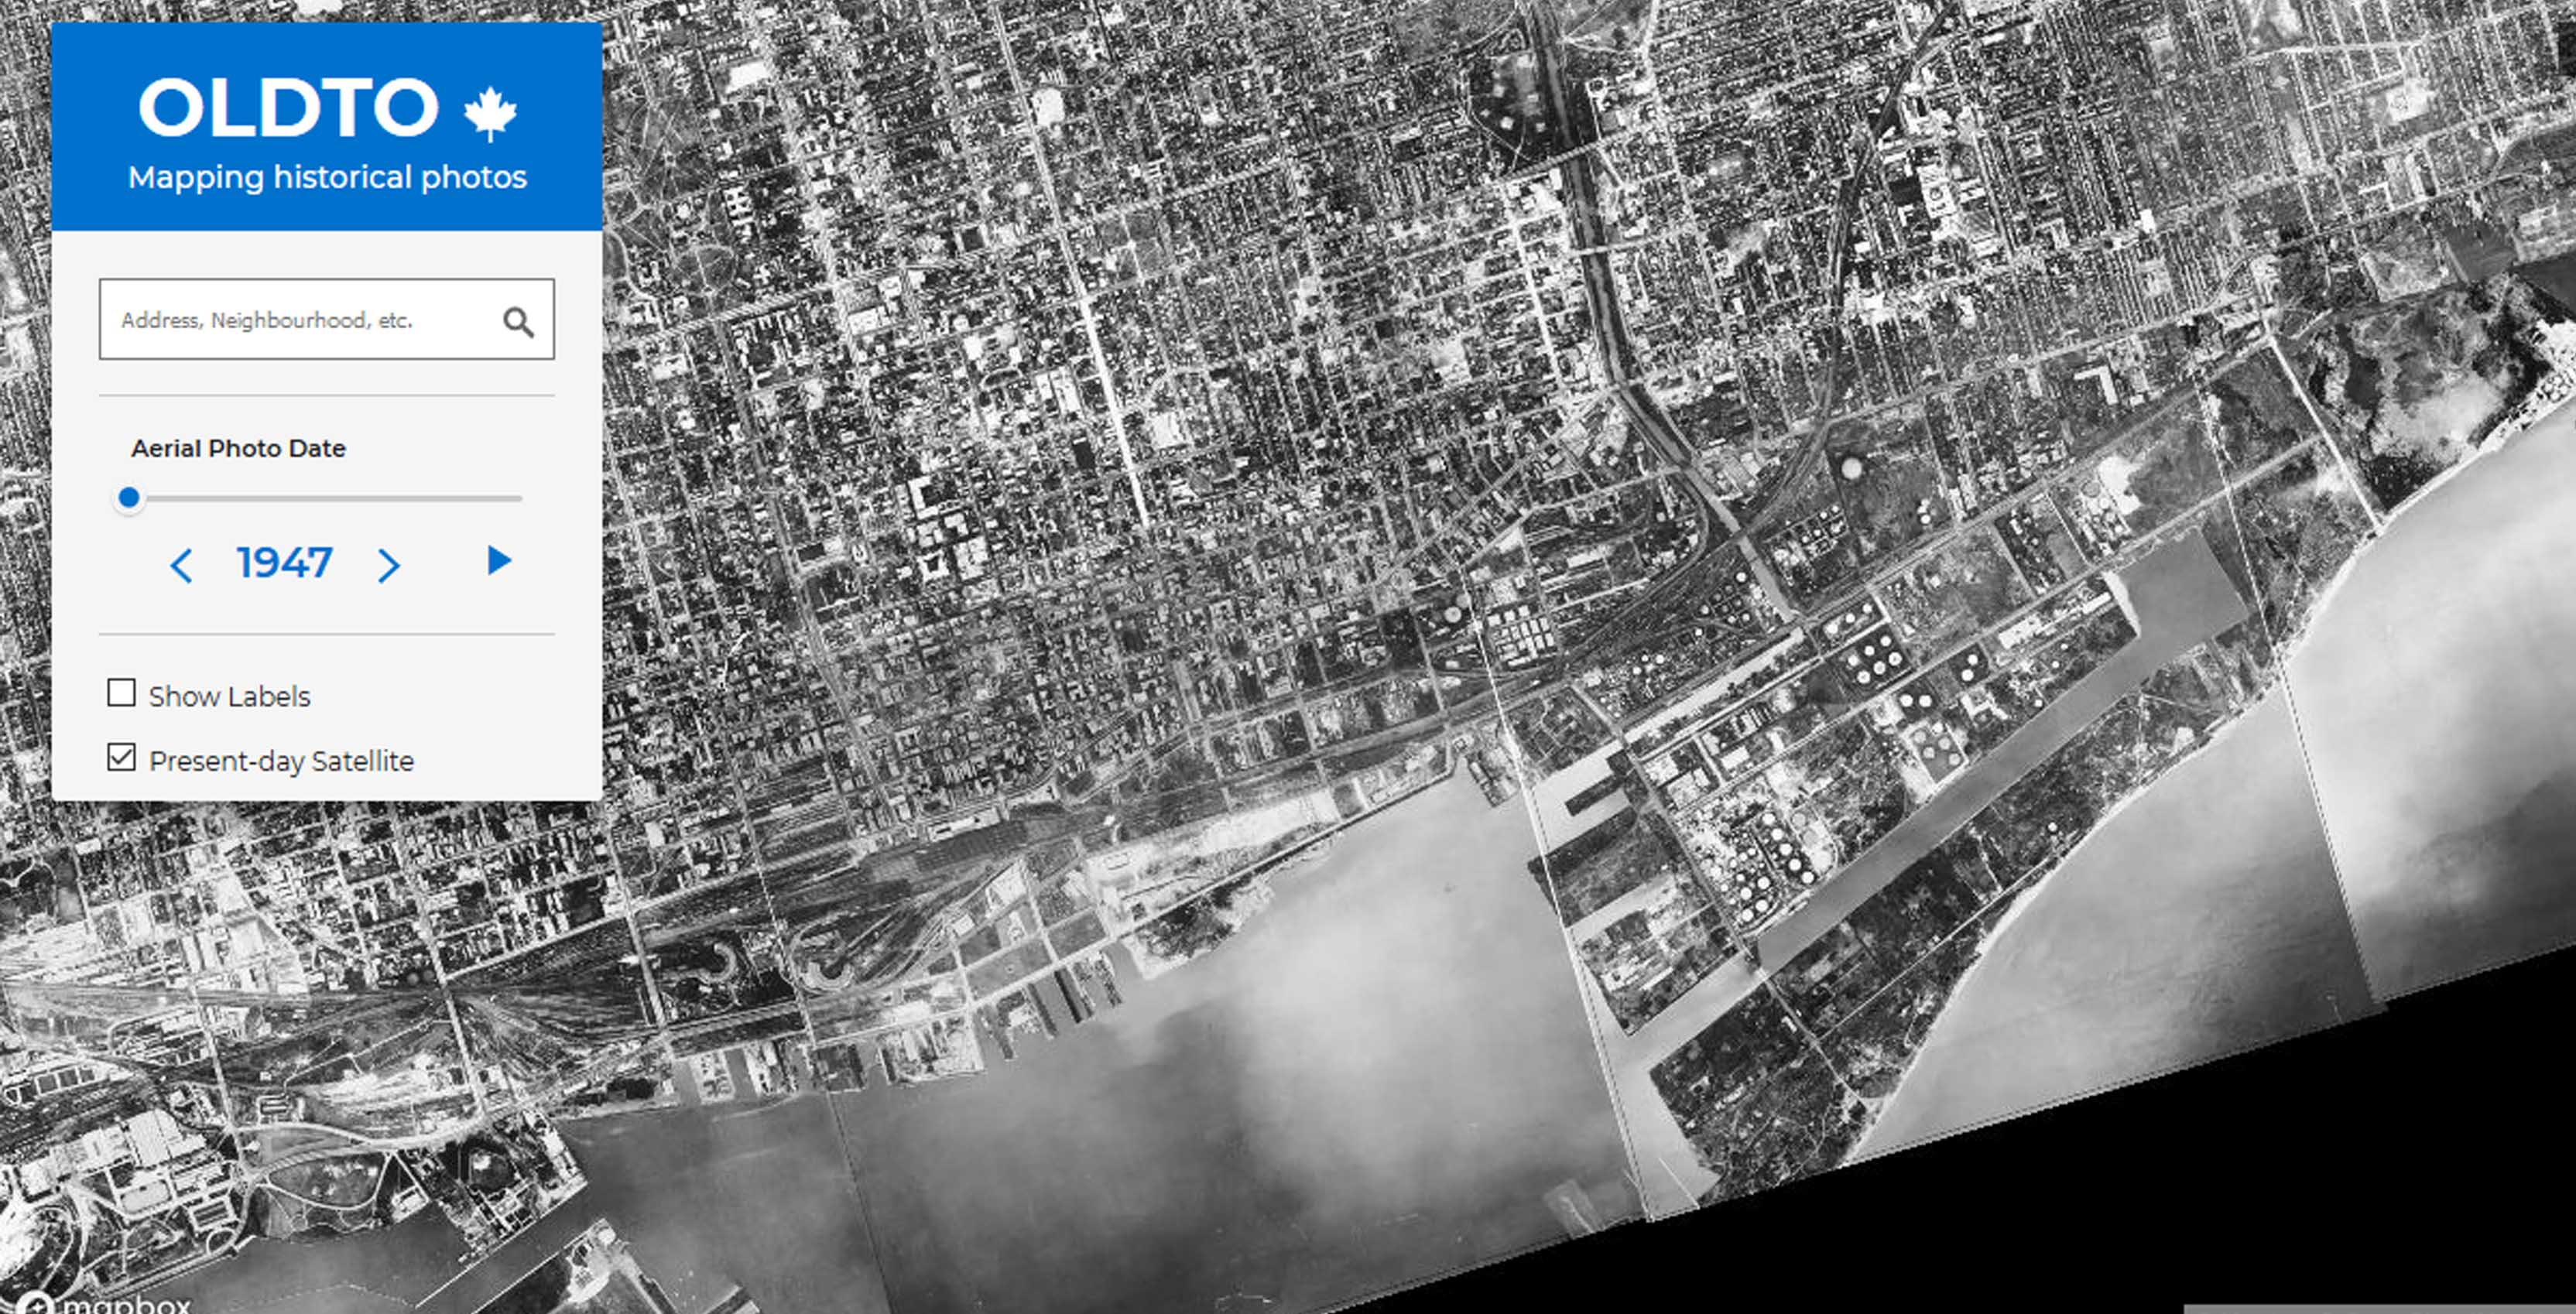 Aerial map of Toronto in 1947 shown by Old Toronto